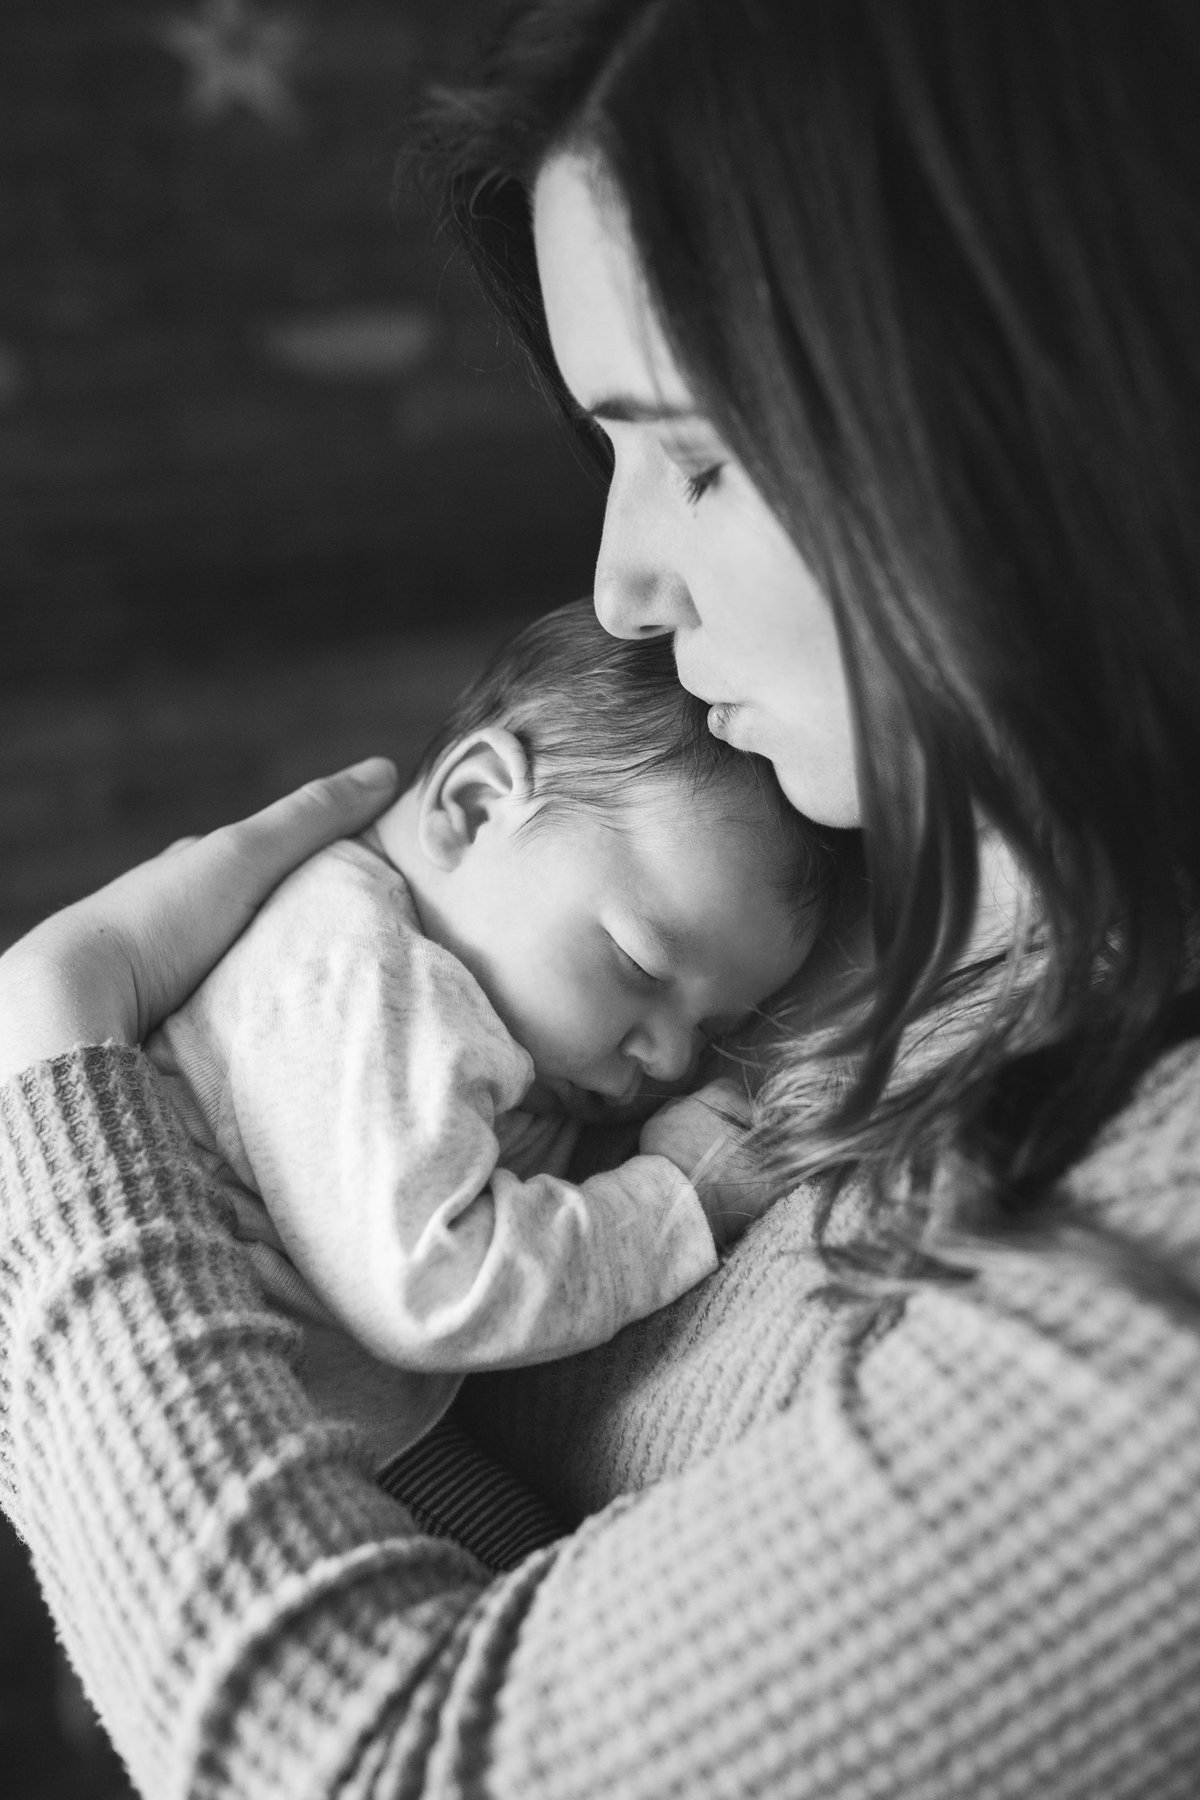 Laura-Klacik-Photography-Lifestyle-Newborn-Photos-44